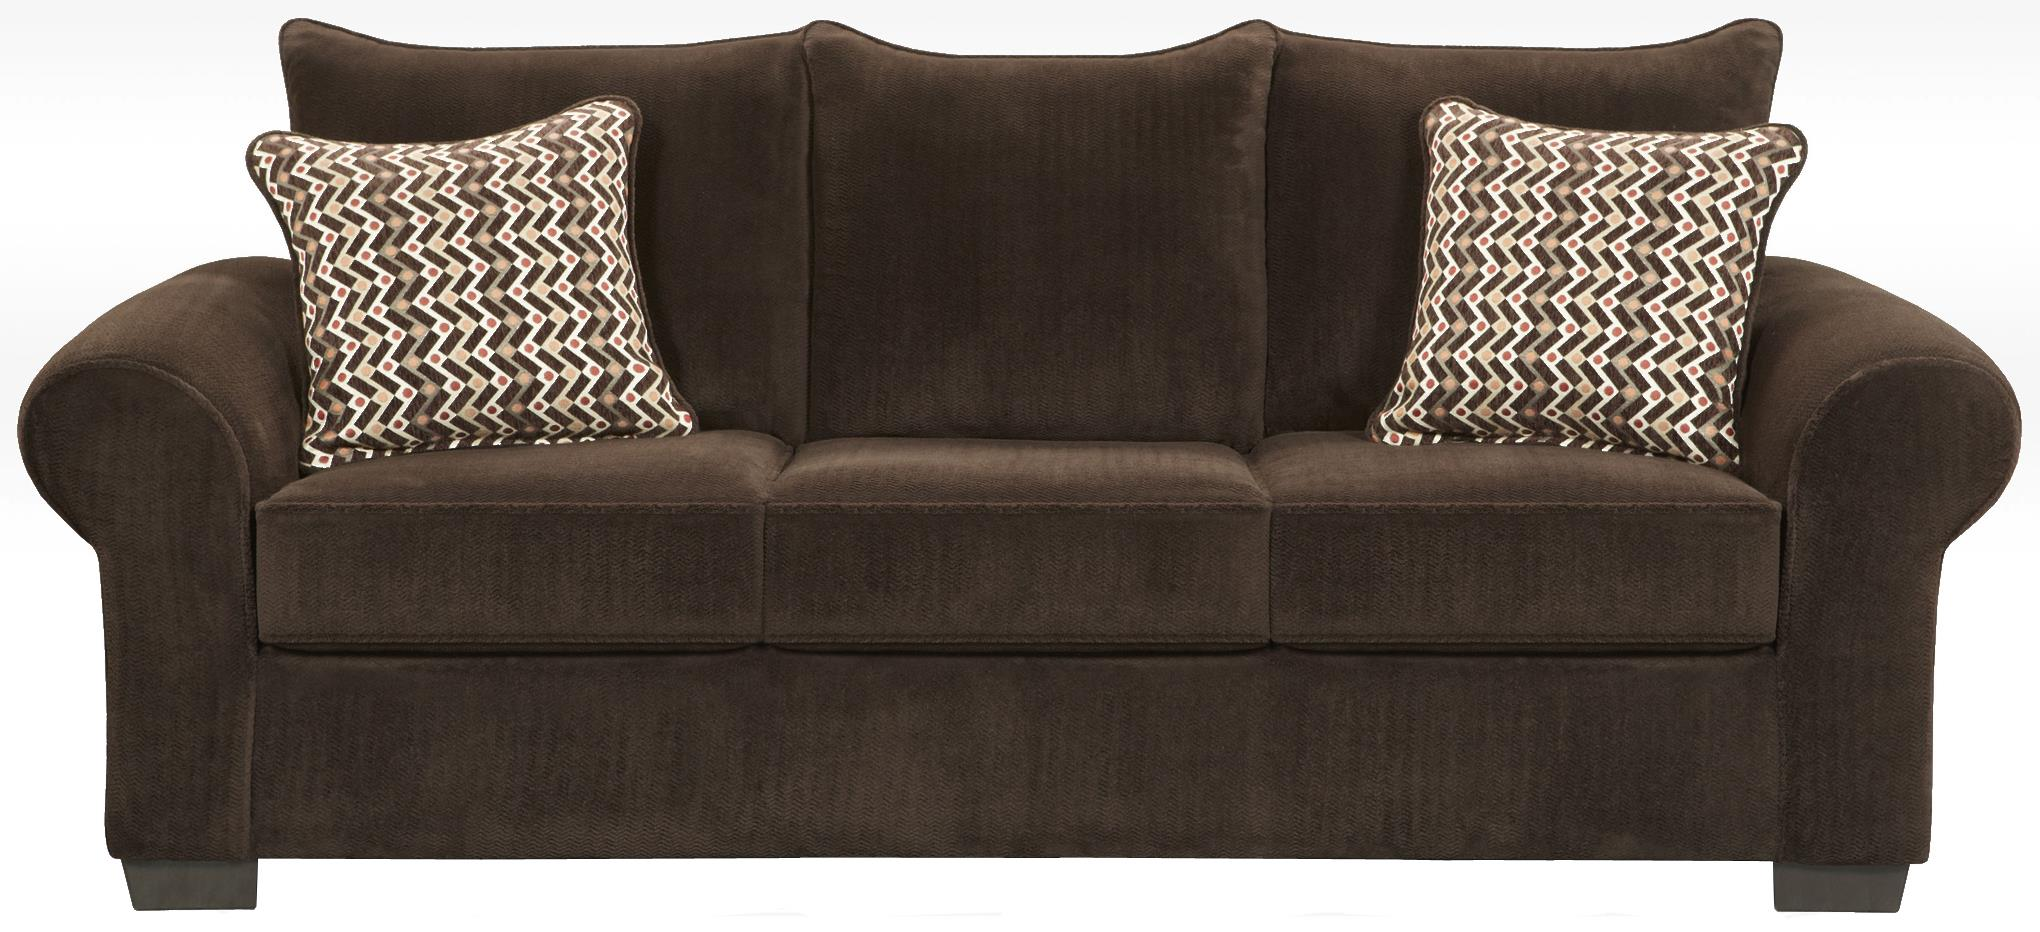 Contemporary sofa with large rolled arms 7300 by for Affordable furniture number